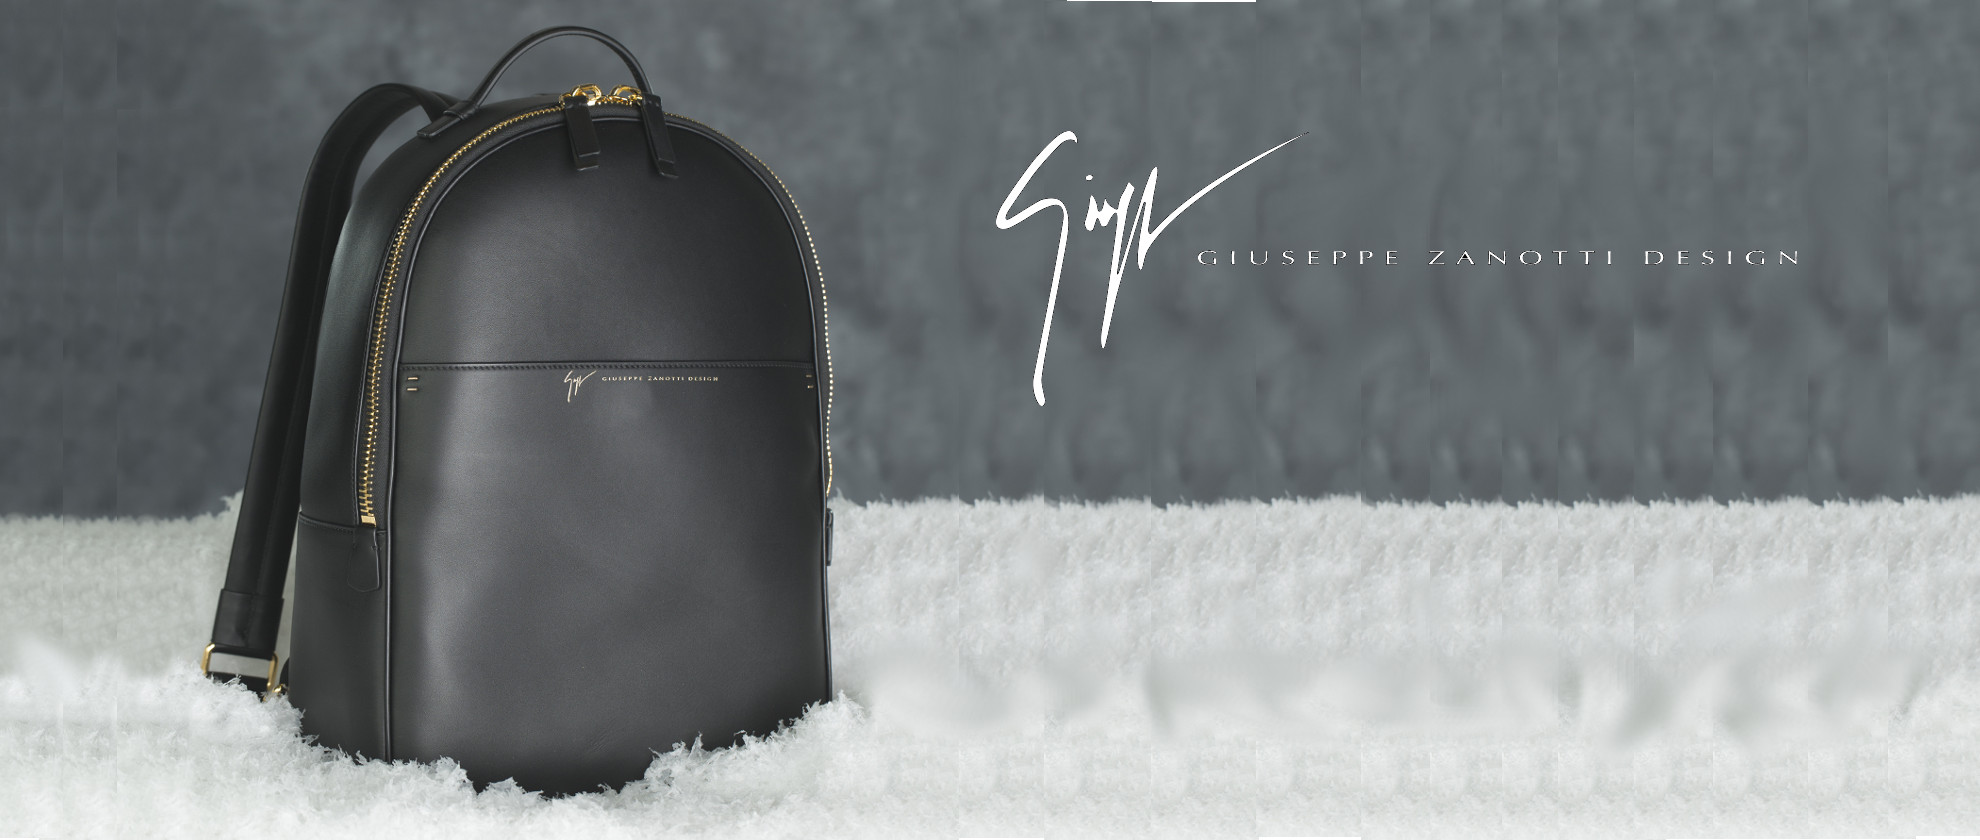 Staff Pick: Giuseppe Zanotti Leather Backpack